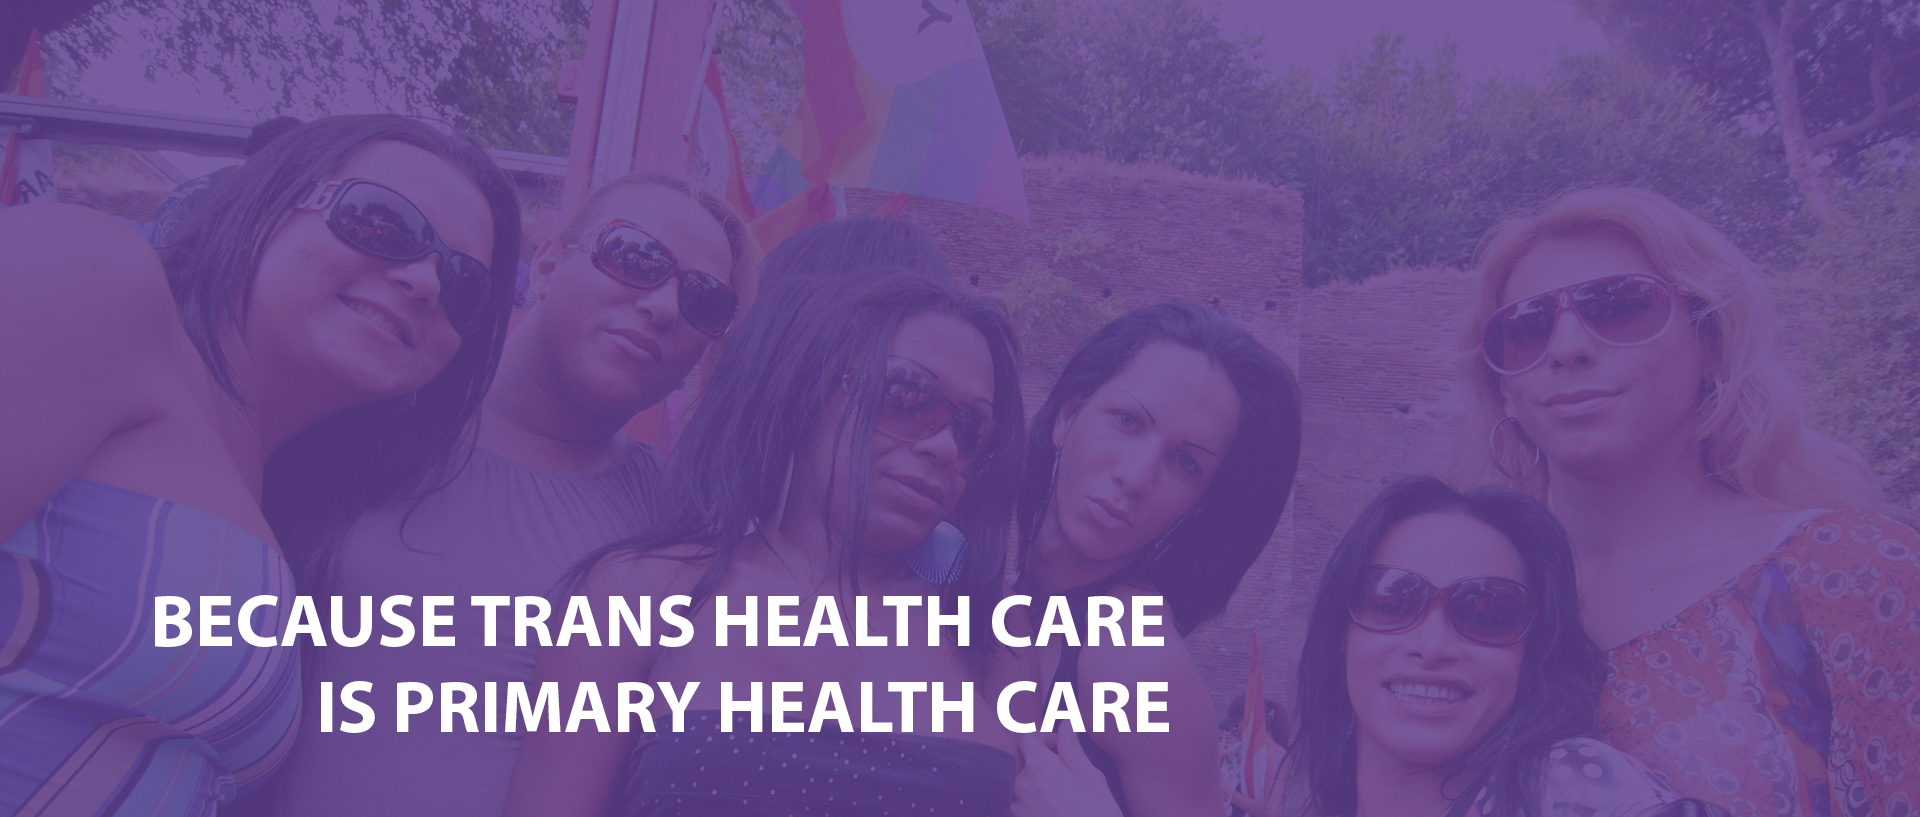 trans health care blog